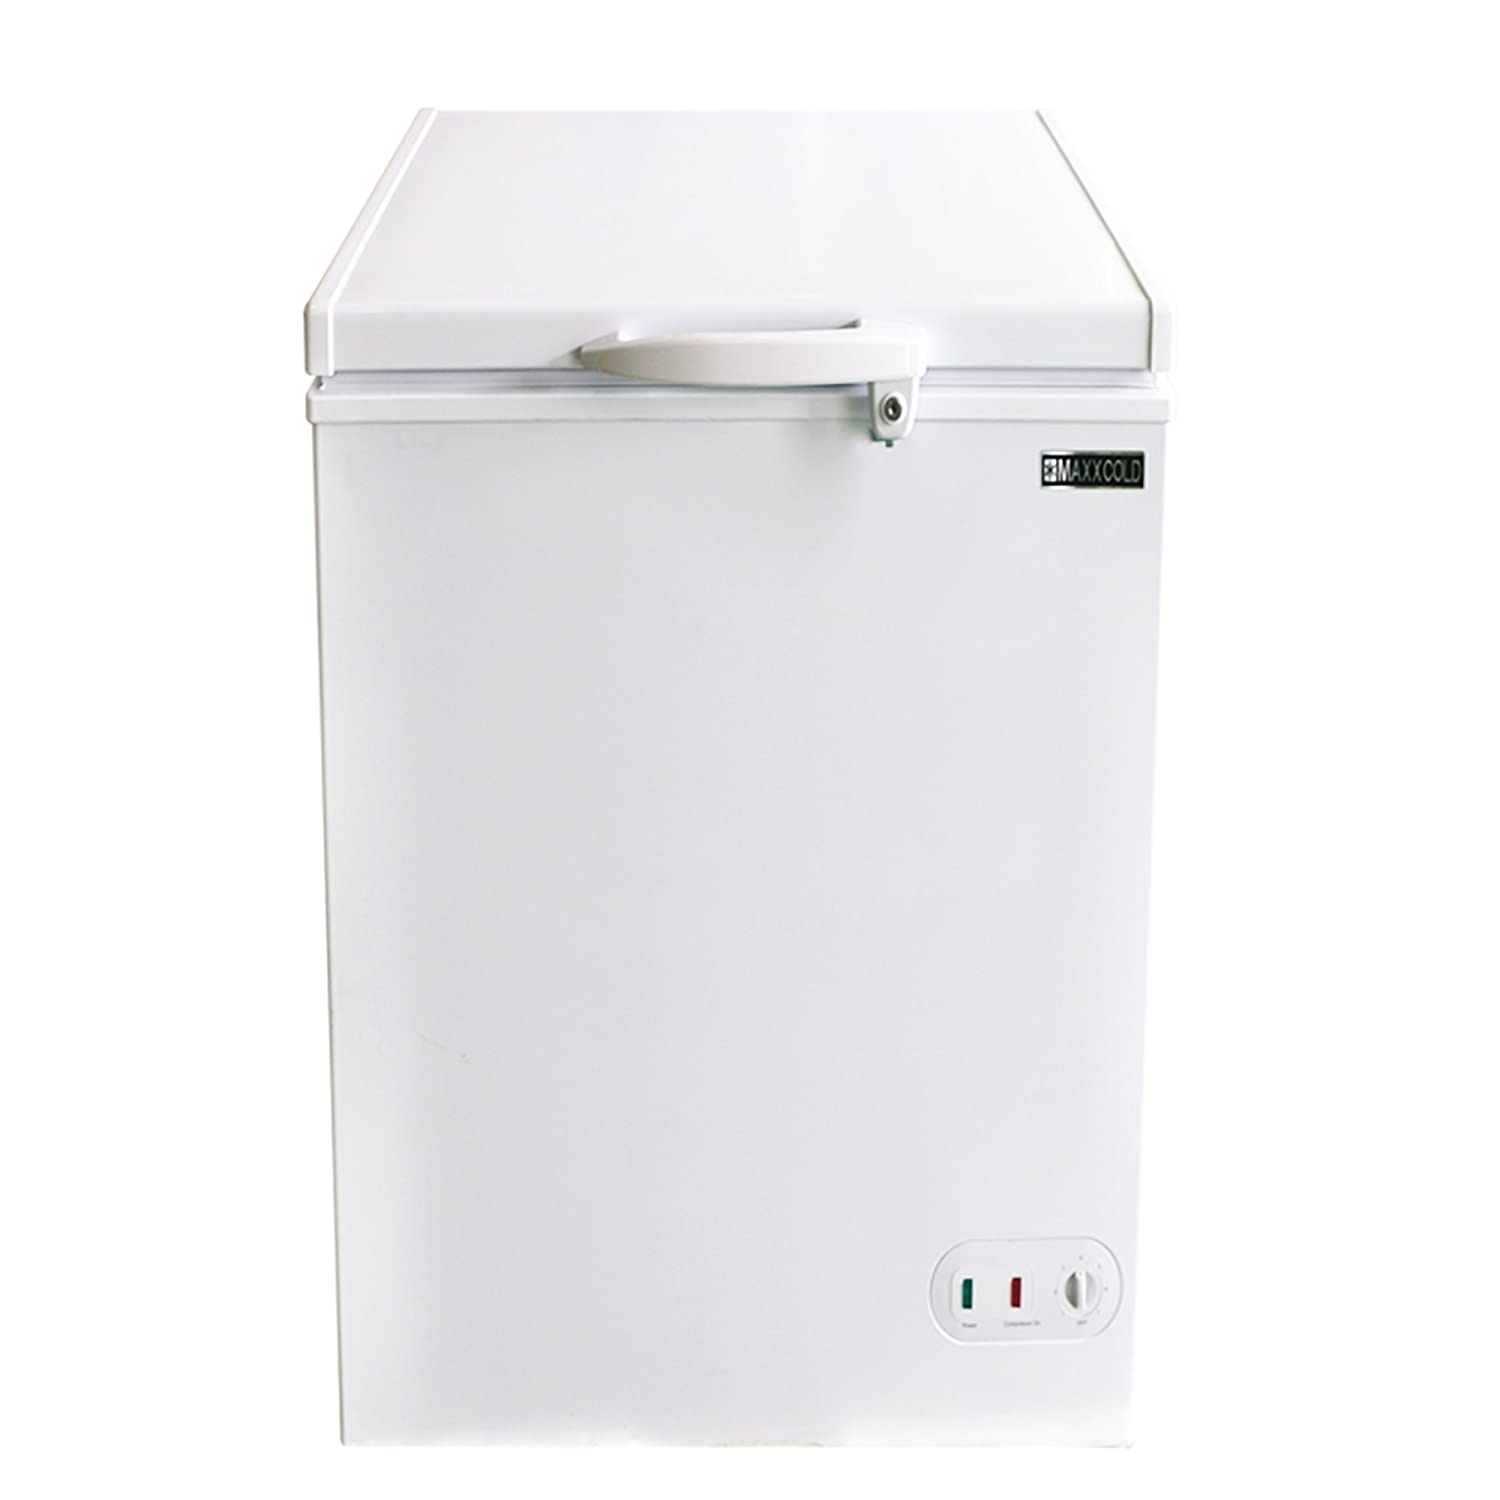 Maxx Cold 3.4 Cubic Feet 96 Liter Solid Hinged Top Sub Zero Commercial Chest Freezer with Locking Lid NSF Garage Ready Manual Defrost Keeps Frozen for 2 Days In Case of Power Outage, 22.8 In W, White